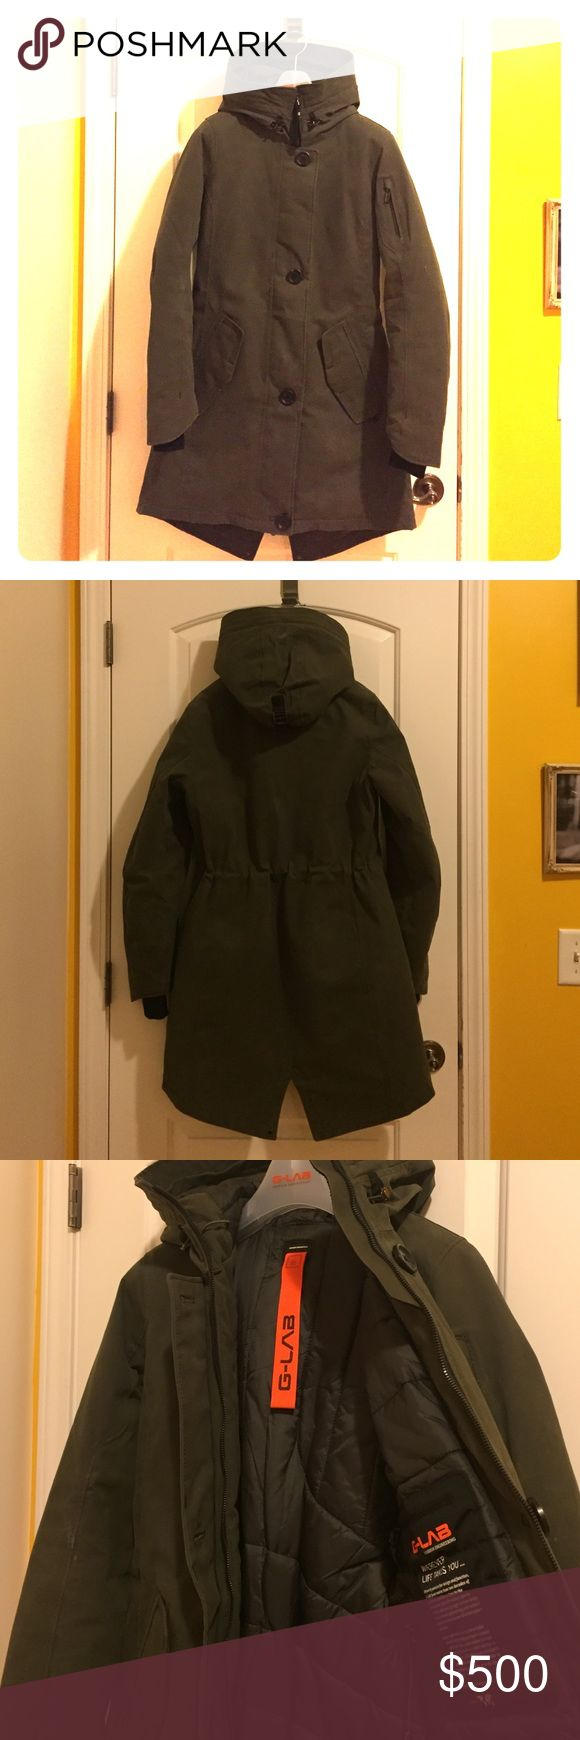 G-lab Montana II - women's down jacket Warm Long down jacket from a expensive German brand. Jacket retails at sale for $1000. Great piece, I just have a lot of jackets and don't need this one. Great matte green color, waterproof, hood with reflective details, waist synch, and bright orange hang tag do you won't loose your jacket on the coat rack at a bar :). Great piece! G-Lab Jackets & Coats Puffers